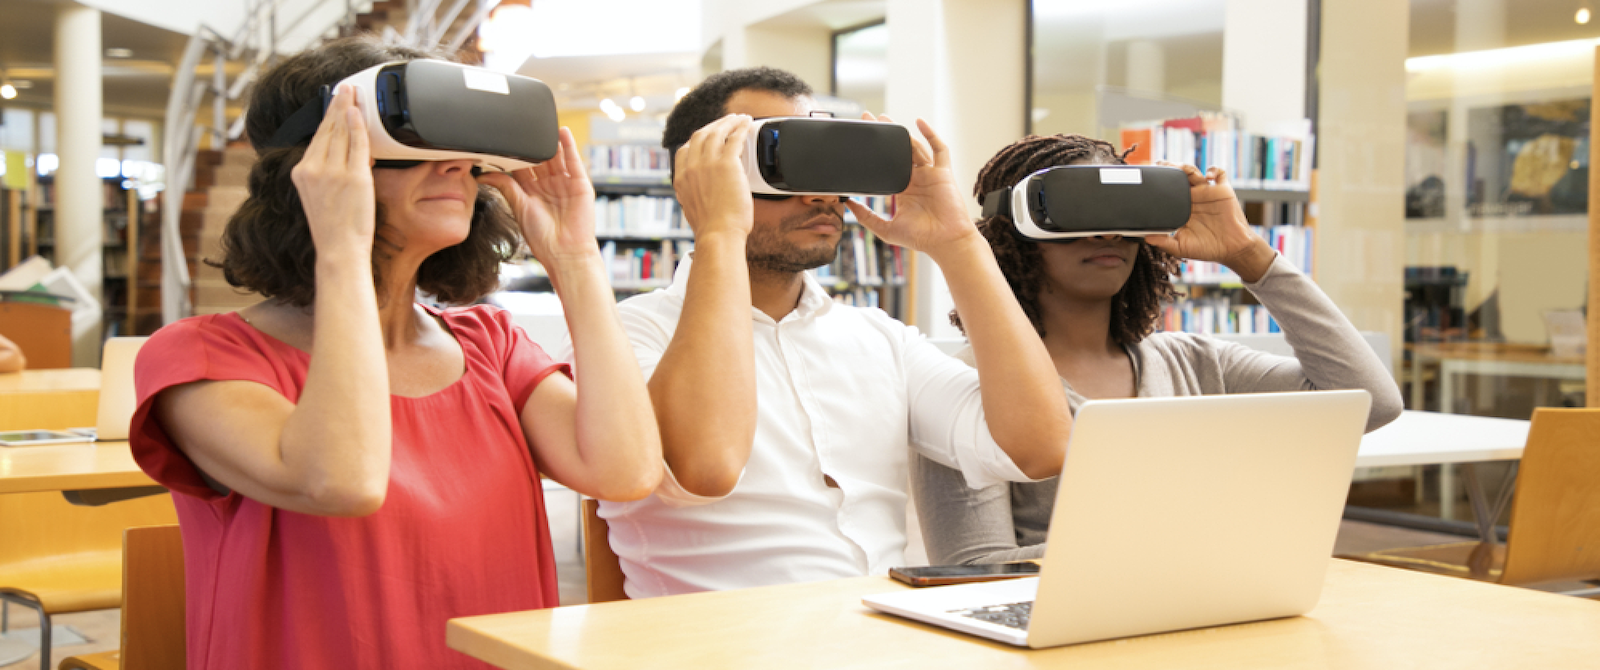 How to Create a Virtual Reality Classroom? Basic Tips to Follow